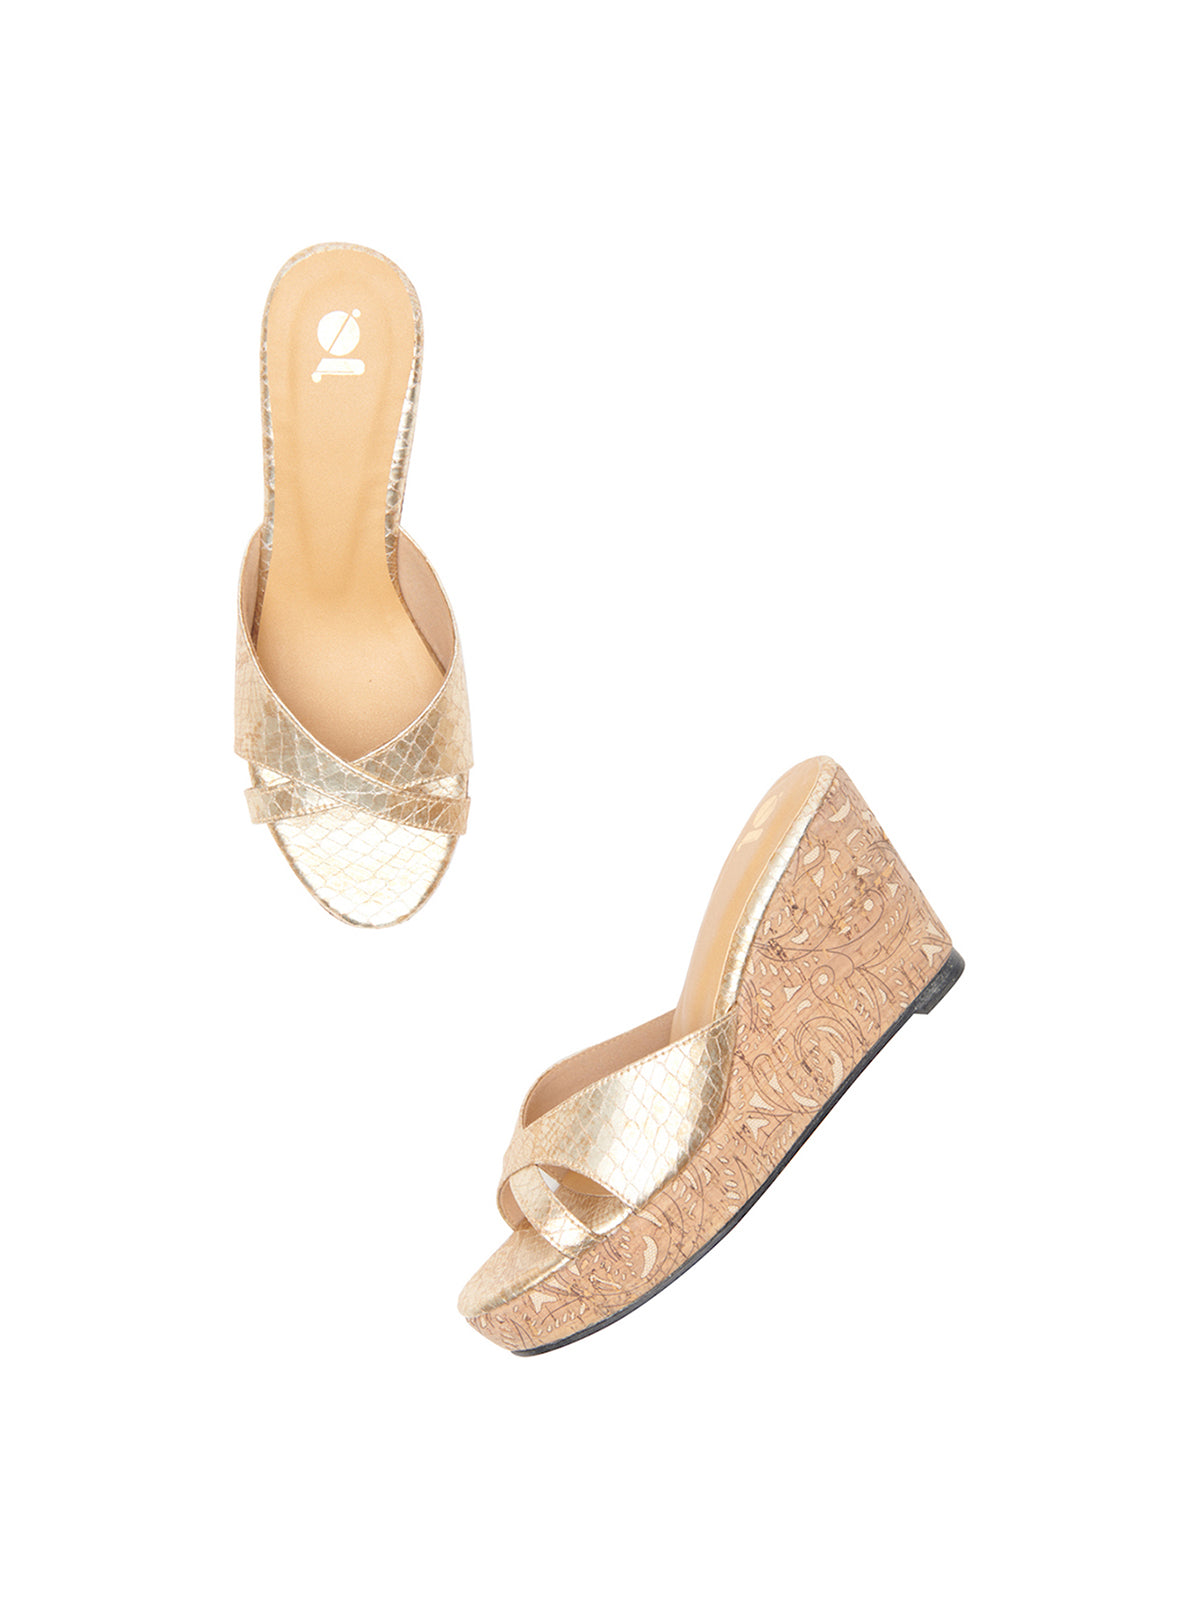 Cork And Metallic Snakeskin Platforms